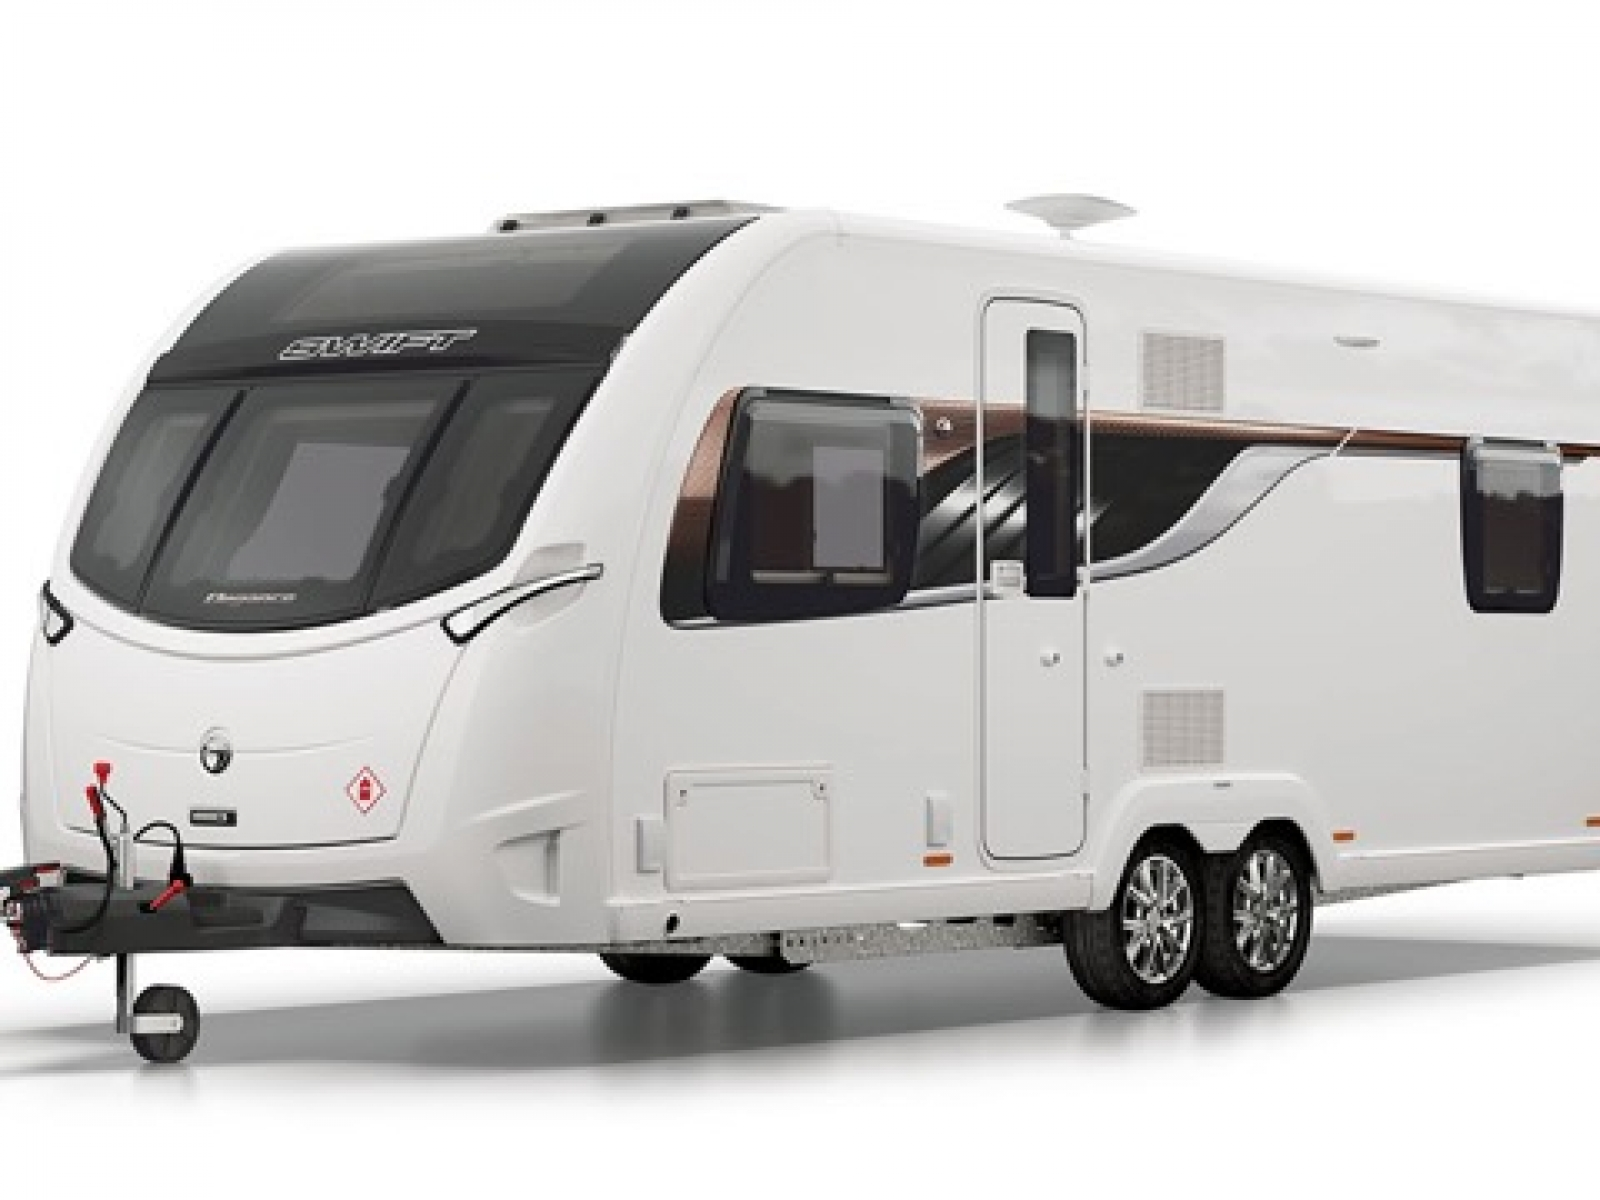 Swift Elegance 645 2018 image